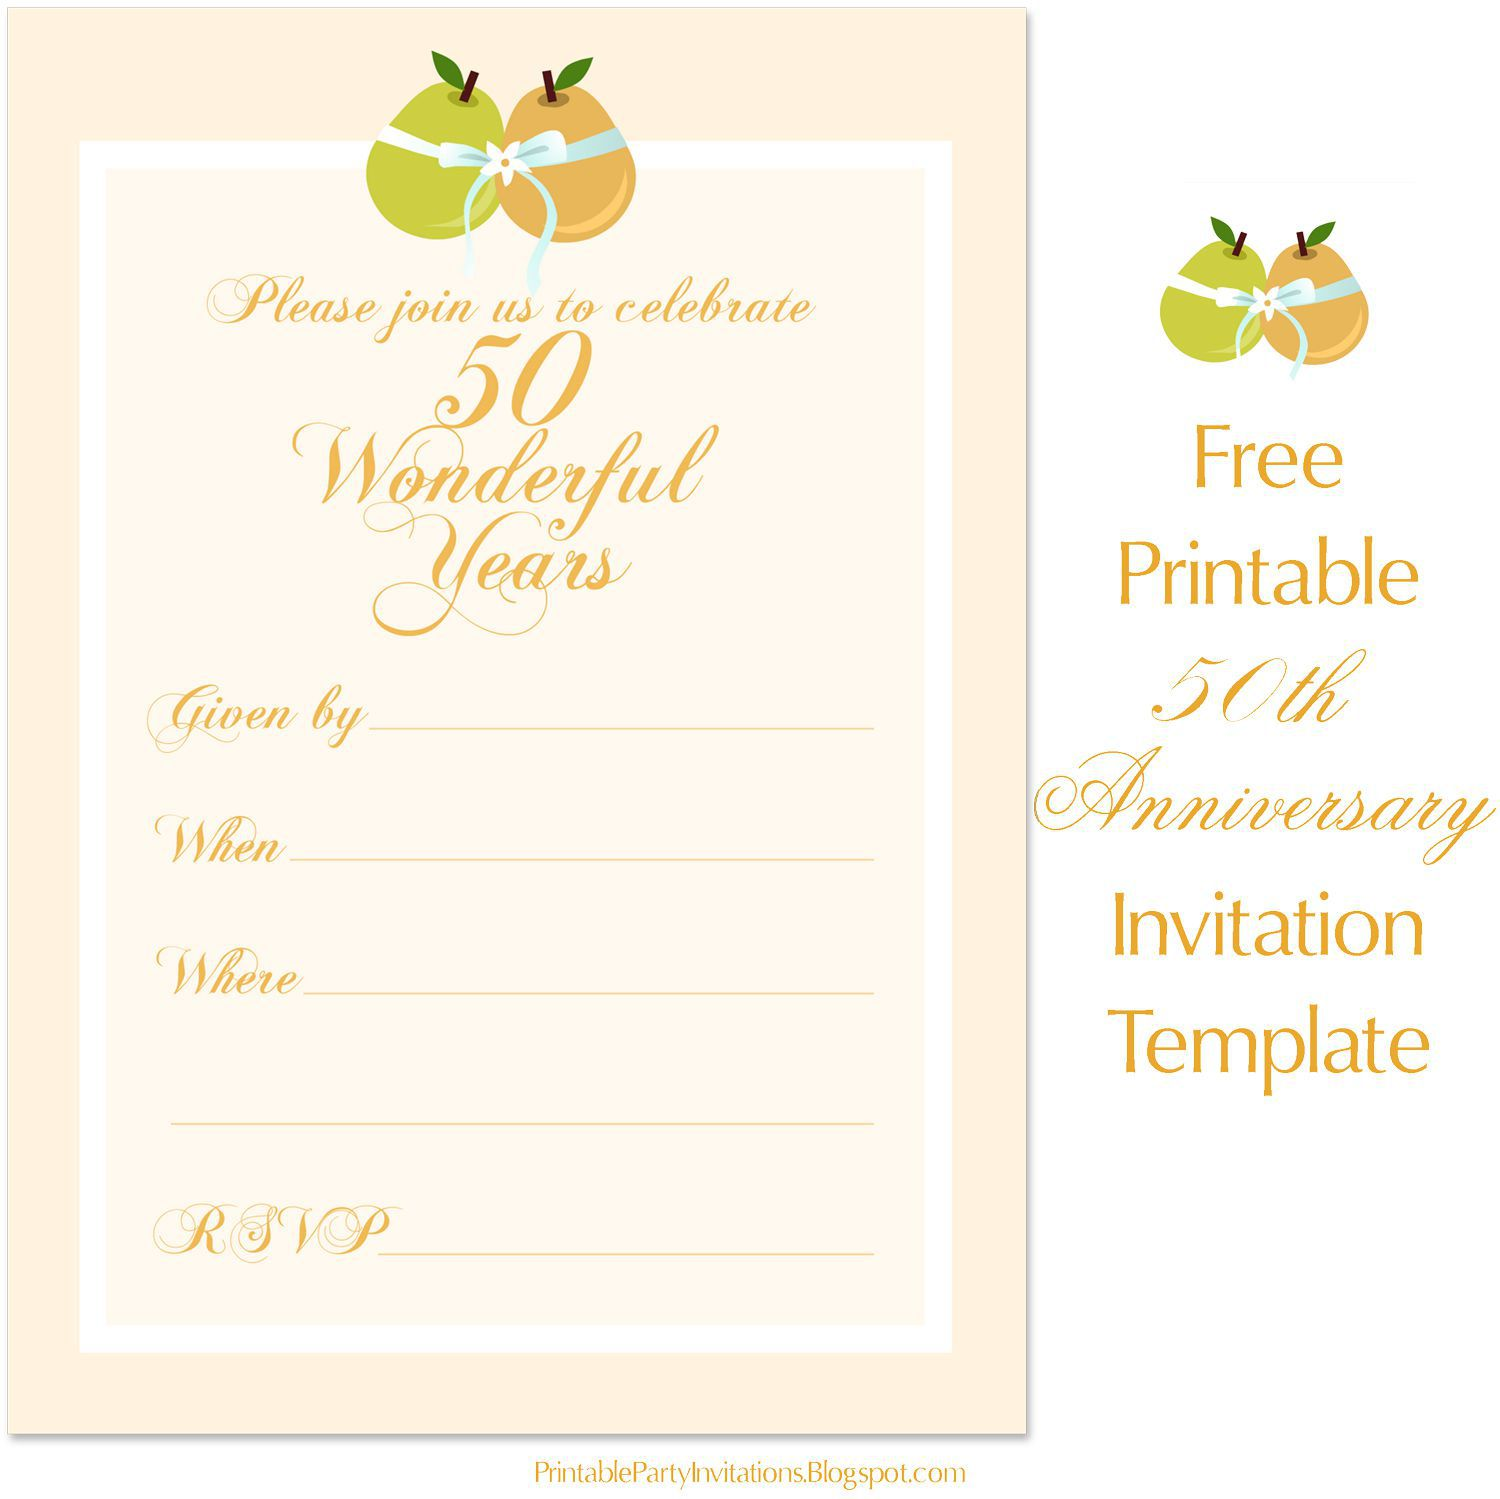 001 Best Free 50th Anniversary Invitation Template For Word Highest Clarity Full